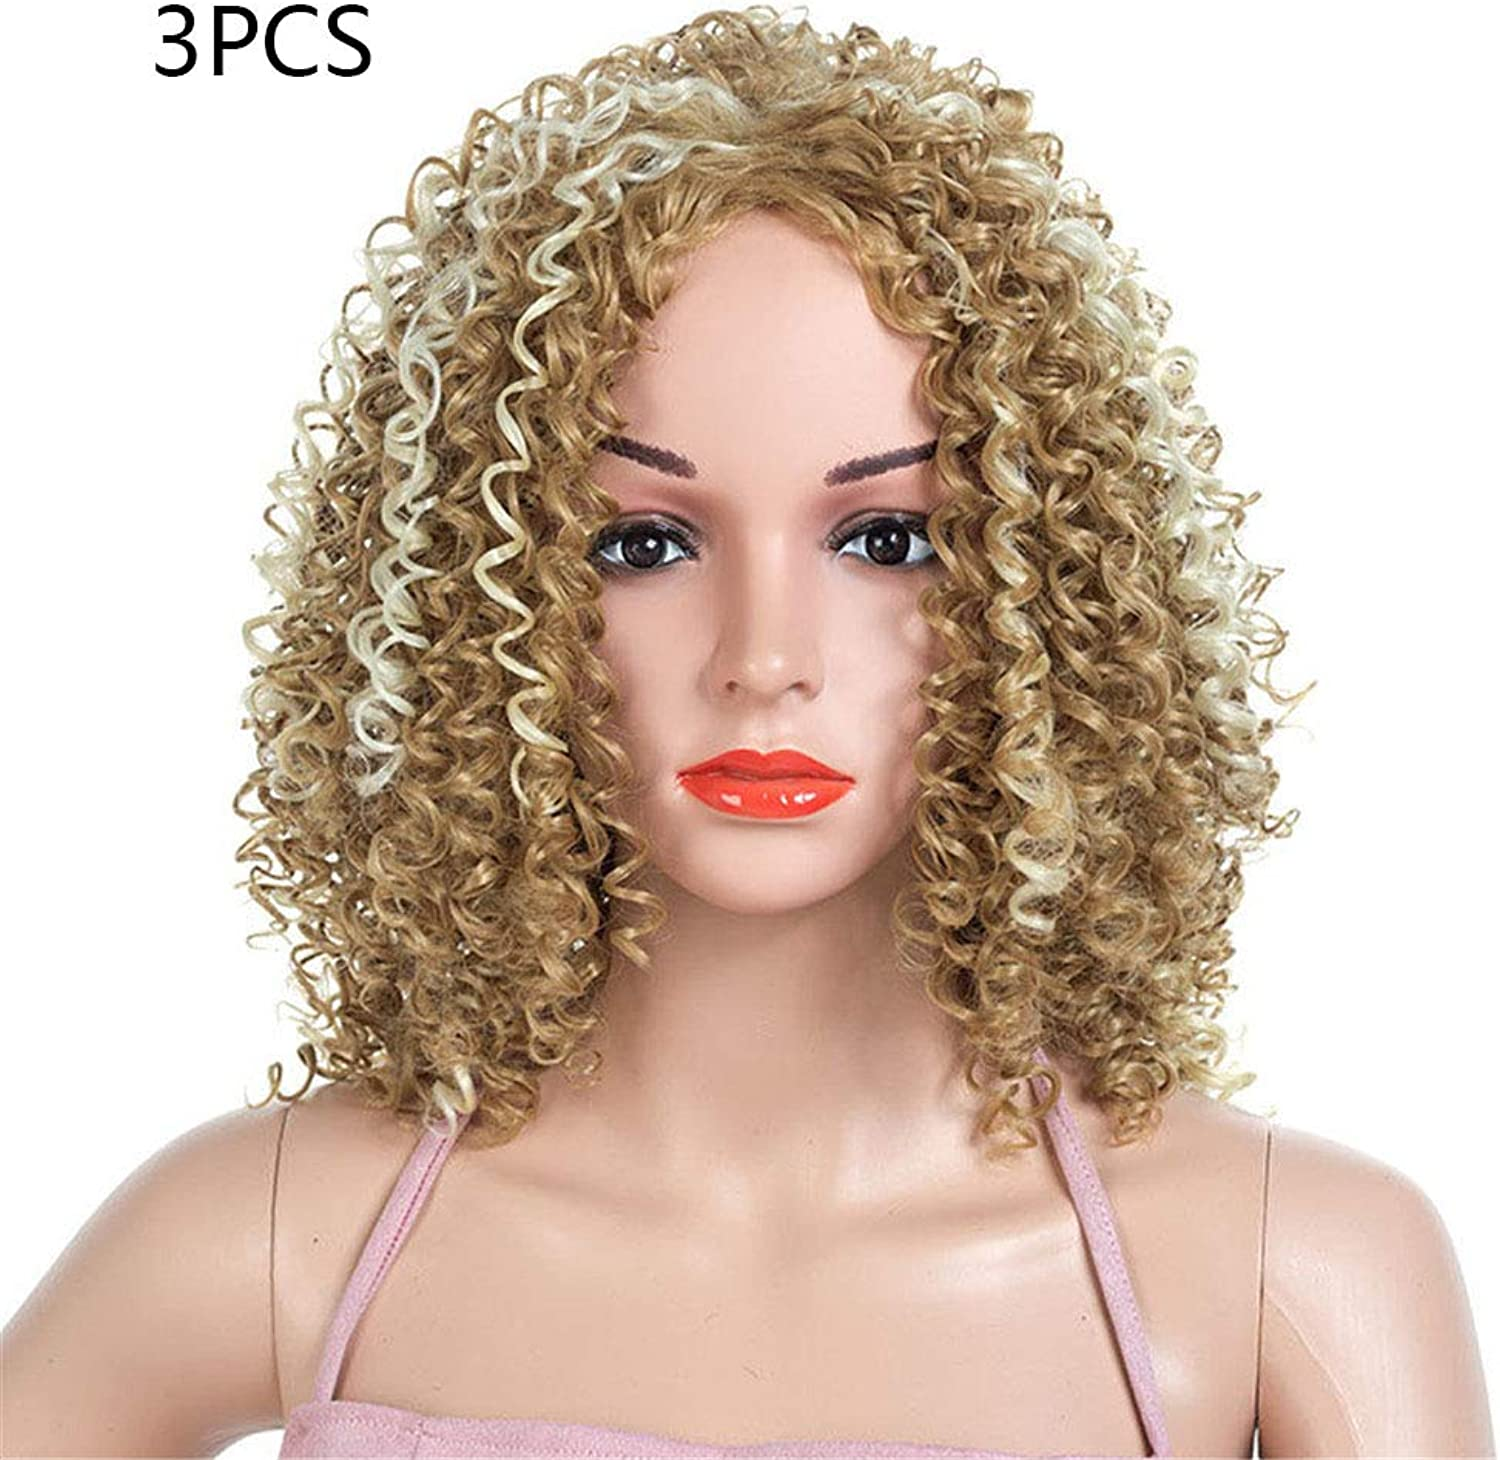 Small Roll Wig Fluffy High Temperature Wire Heat Resistant Fiber Synthetic Lace Party Wigs Cosplay Costume(3PCS)